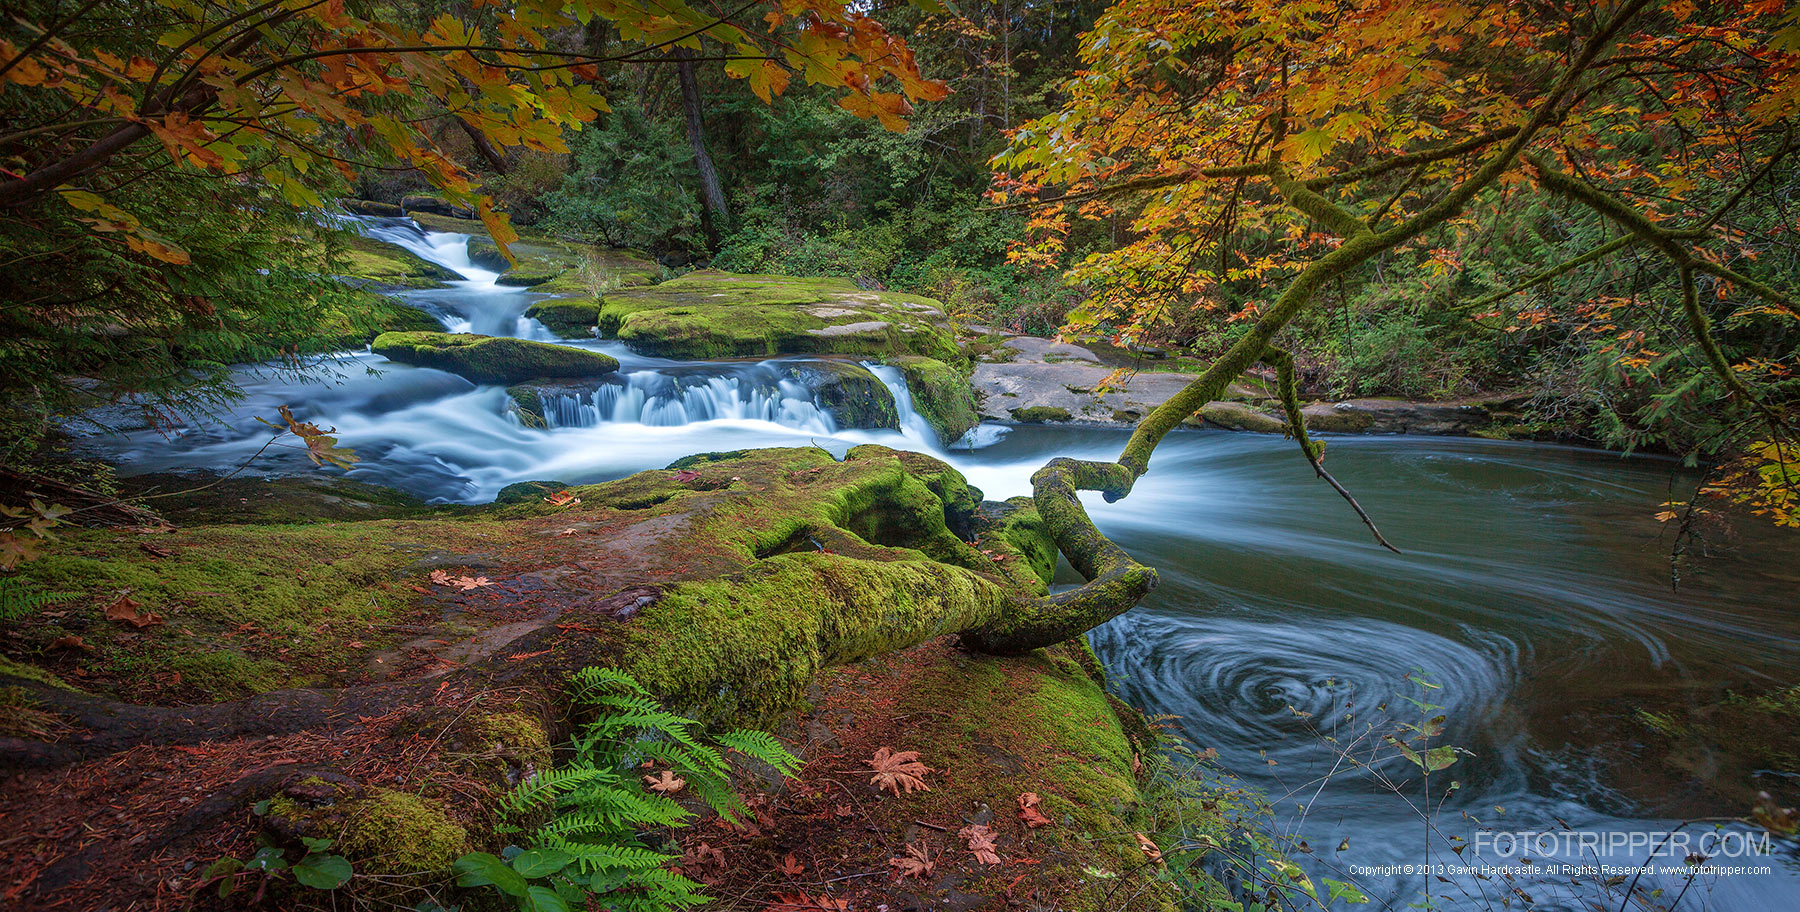 8 Fantastic Fall Photo Tips for Autumn Landscapes